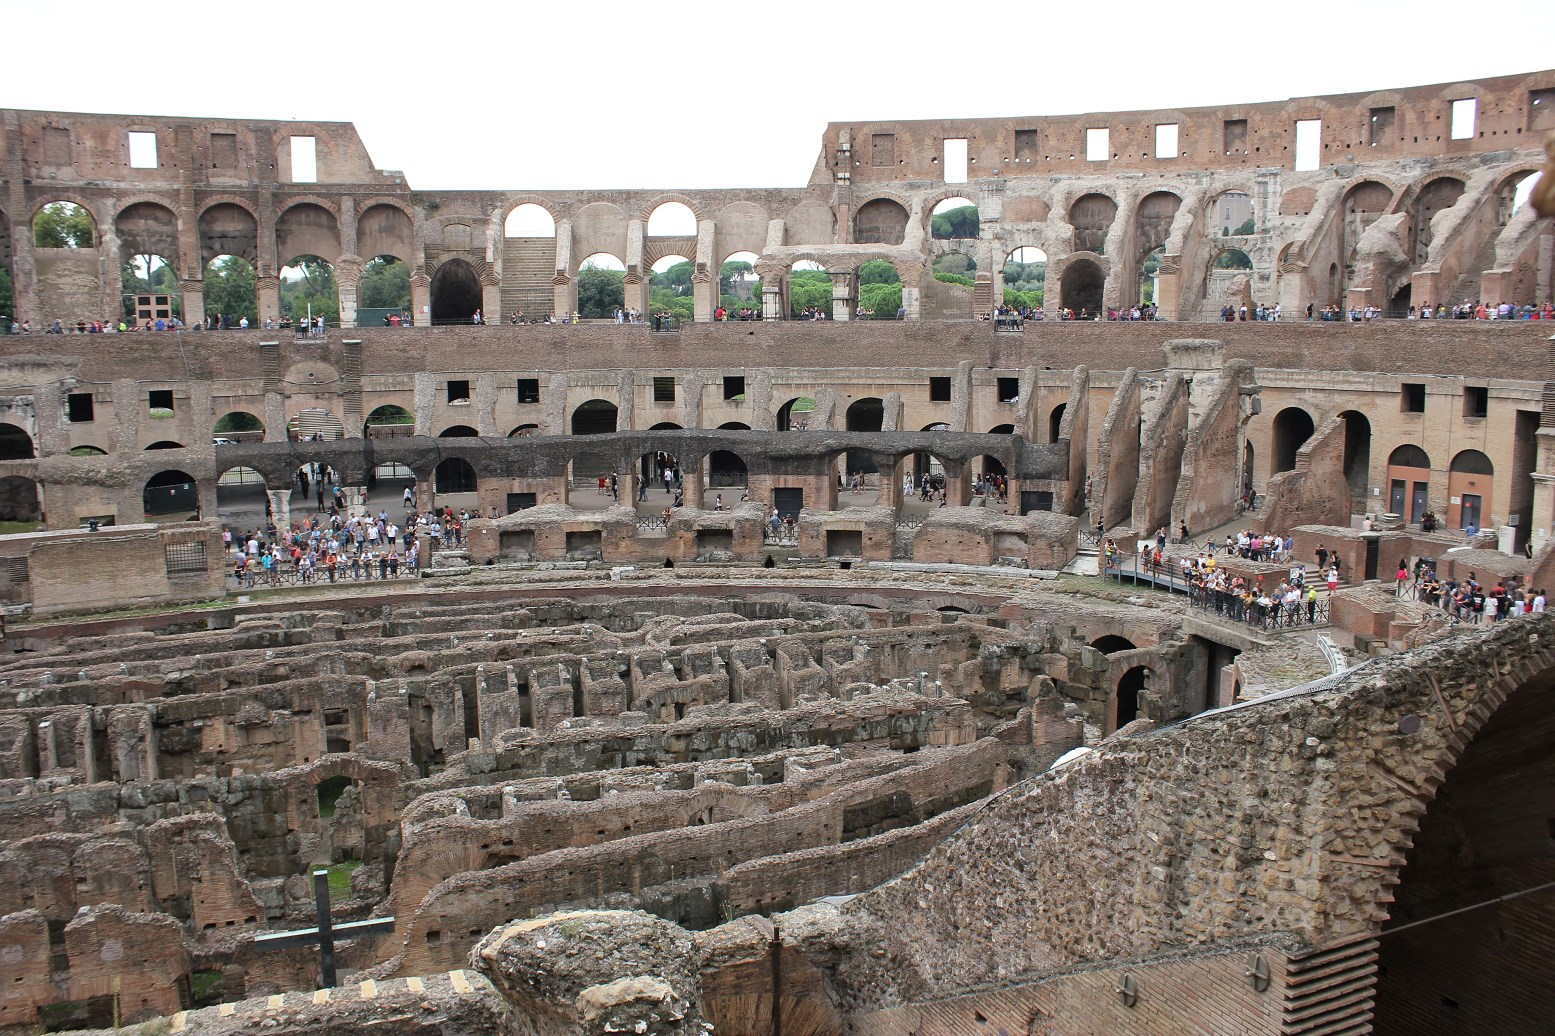 How to Visit the Roman Colosseum